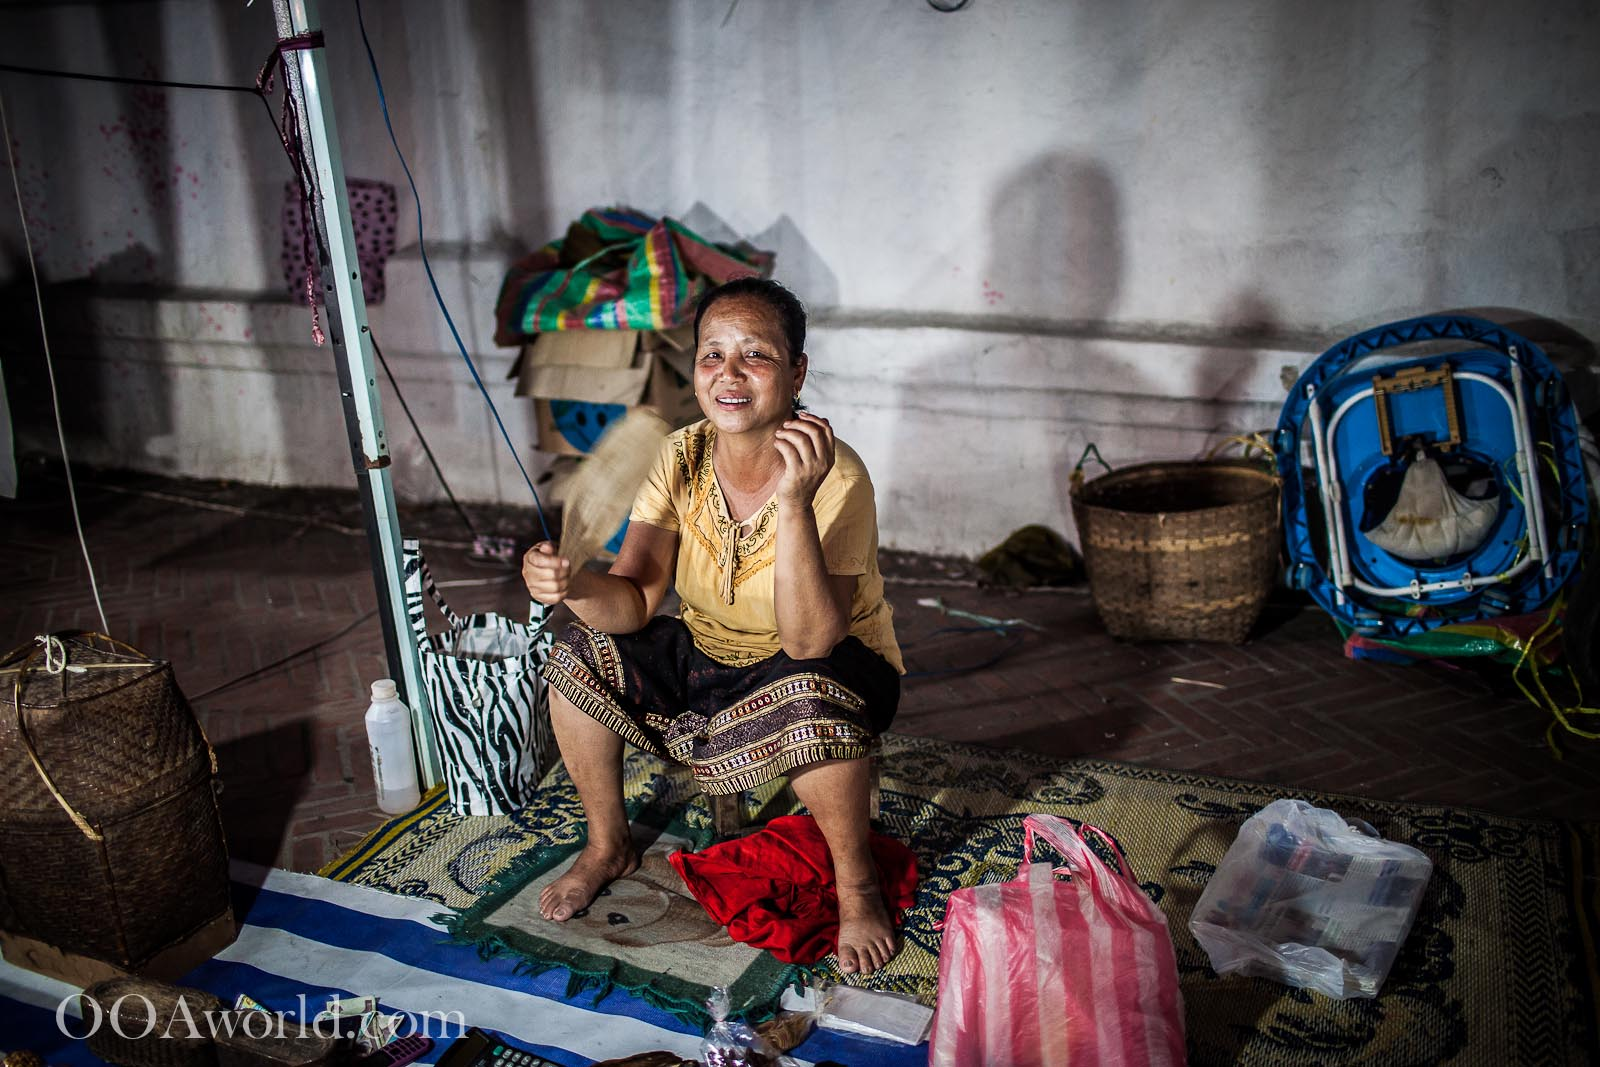 Woman at Luang Prabang Night Market Photo Ooaworld